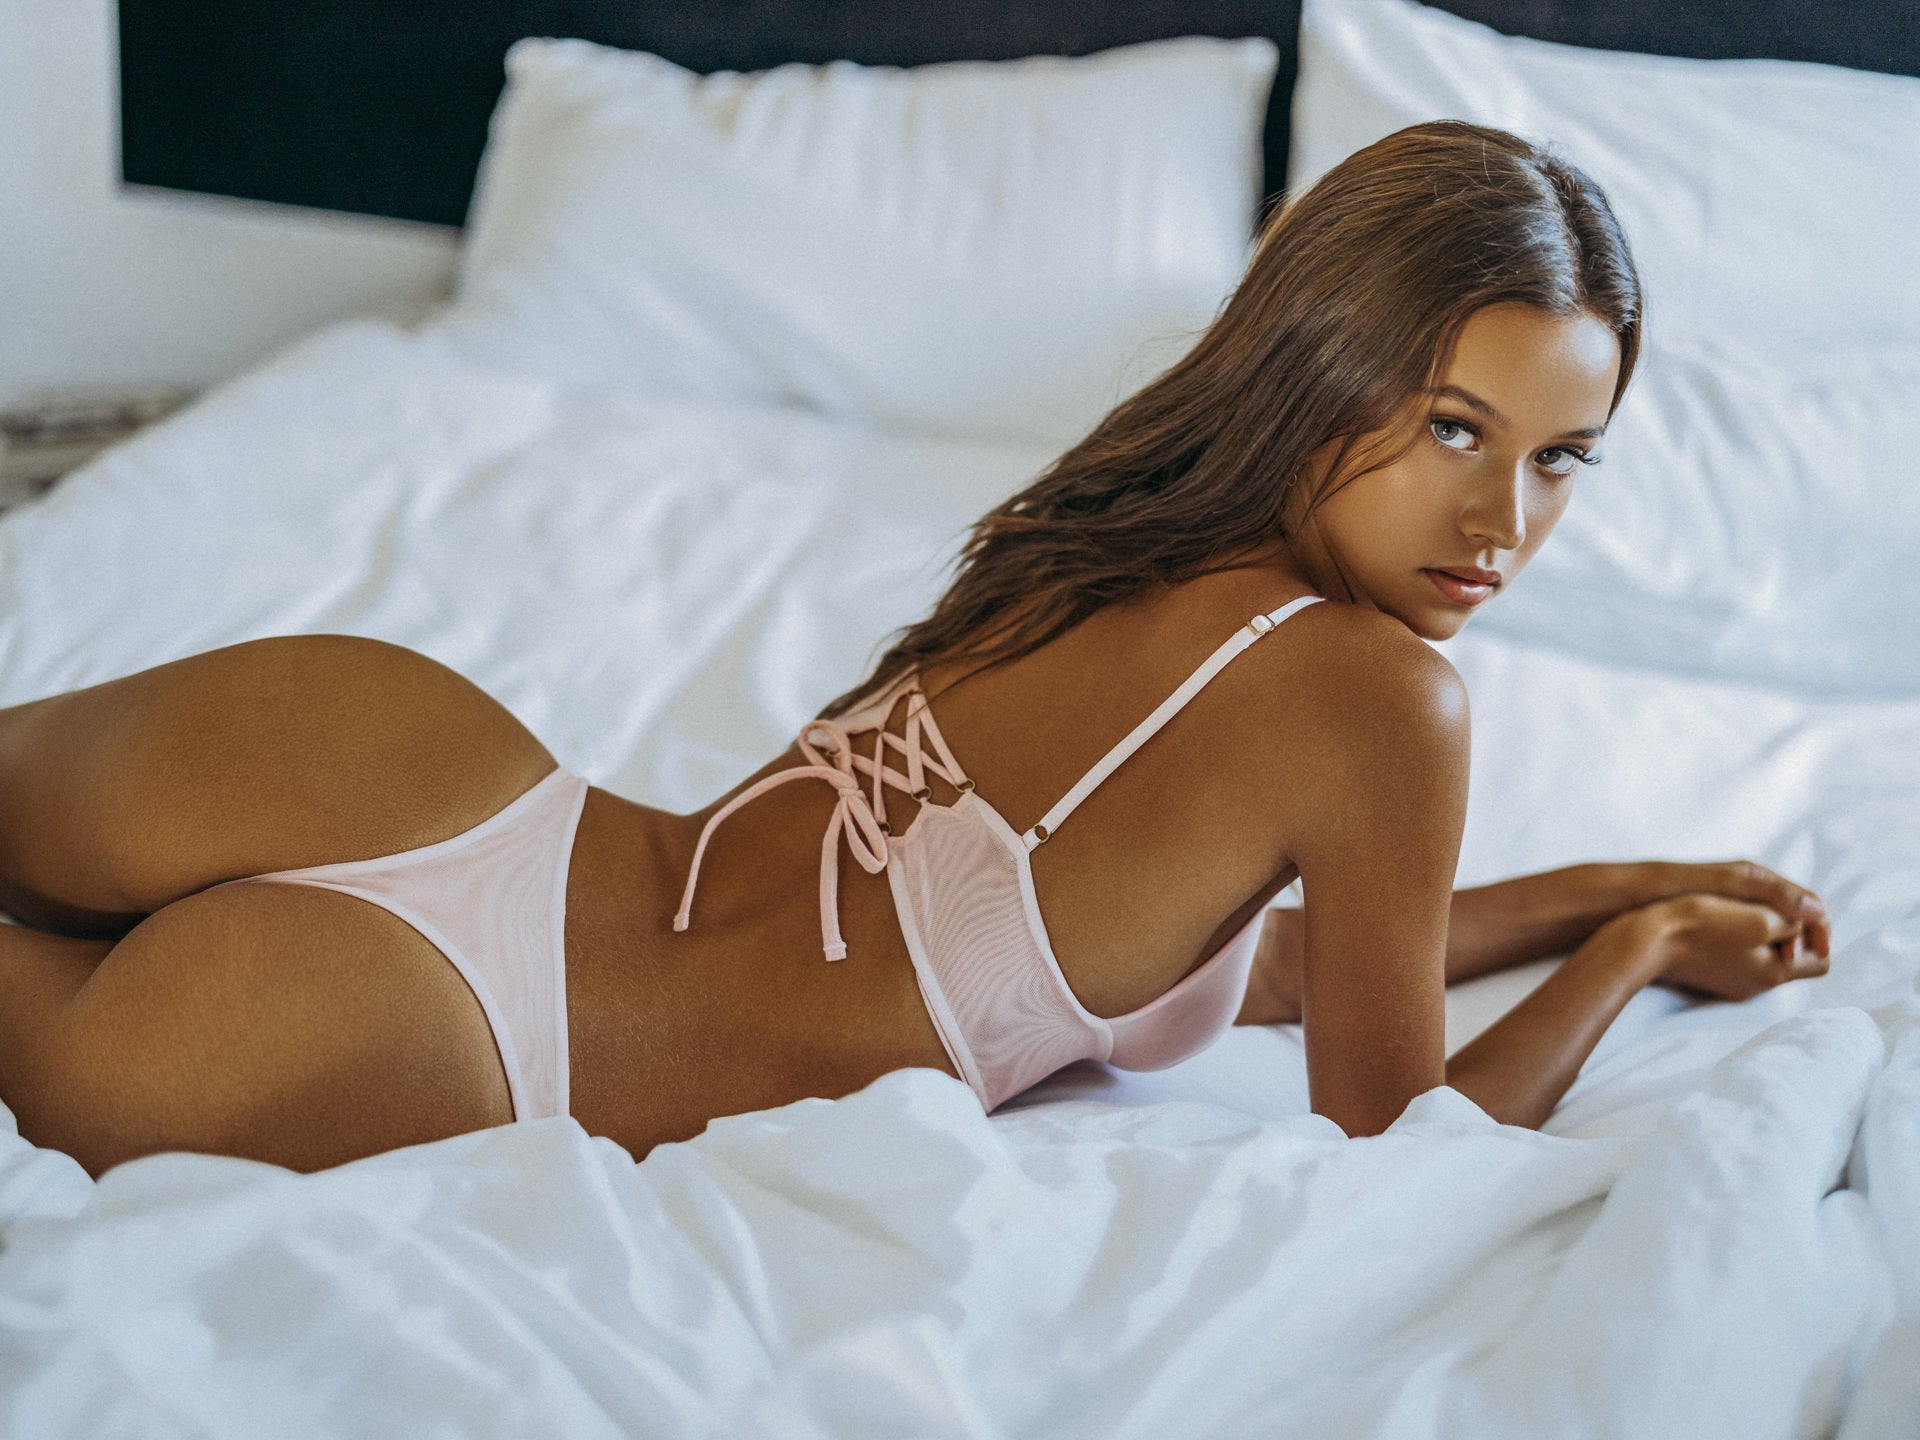 Isabelle Mathers wearing the For You Baby Pink Crop Set while lying down on a bed